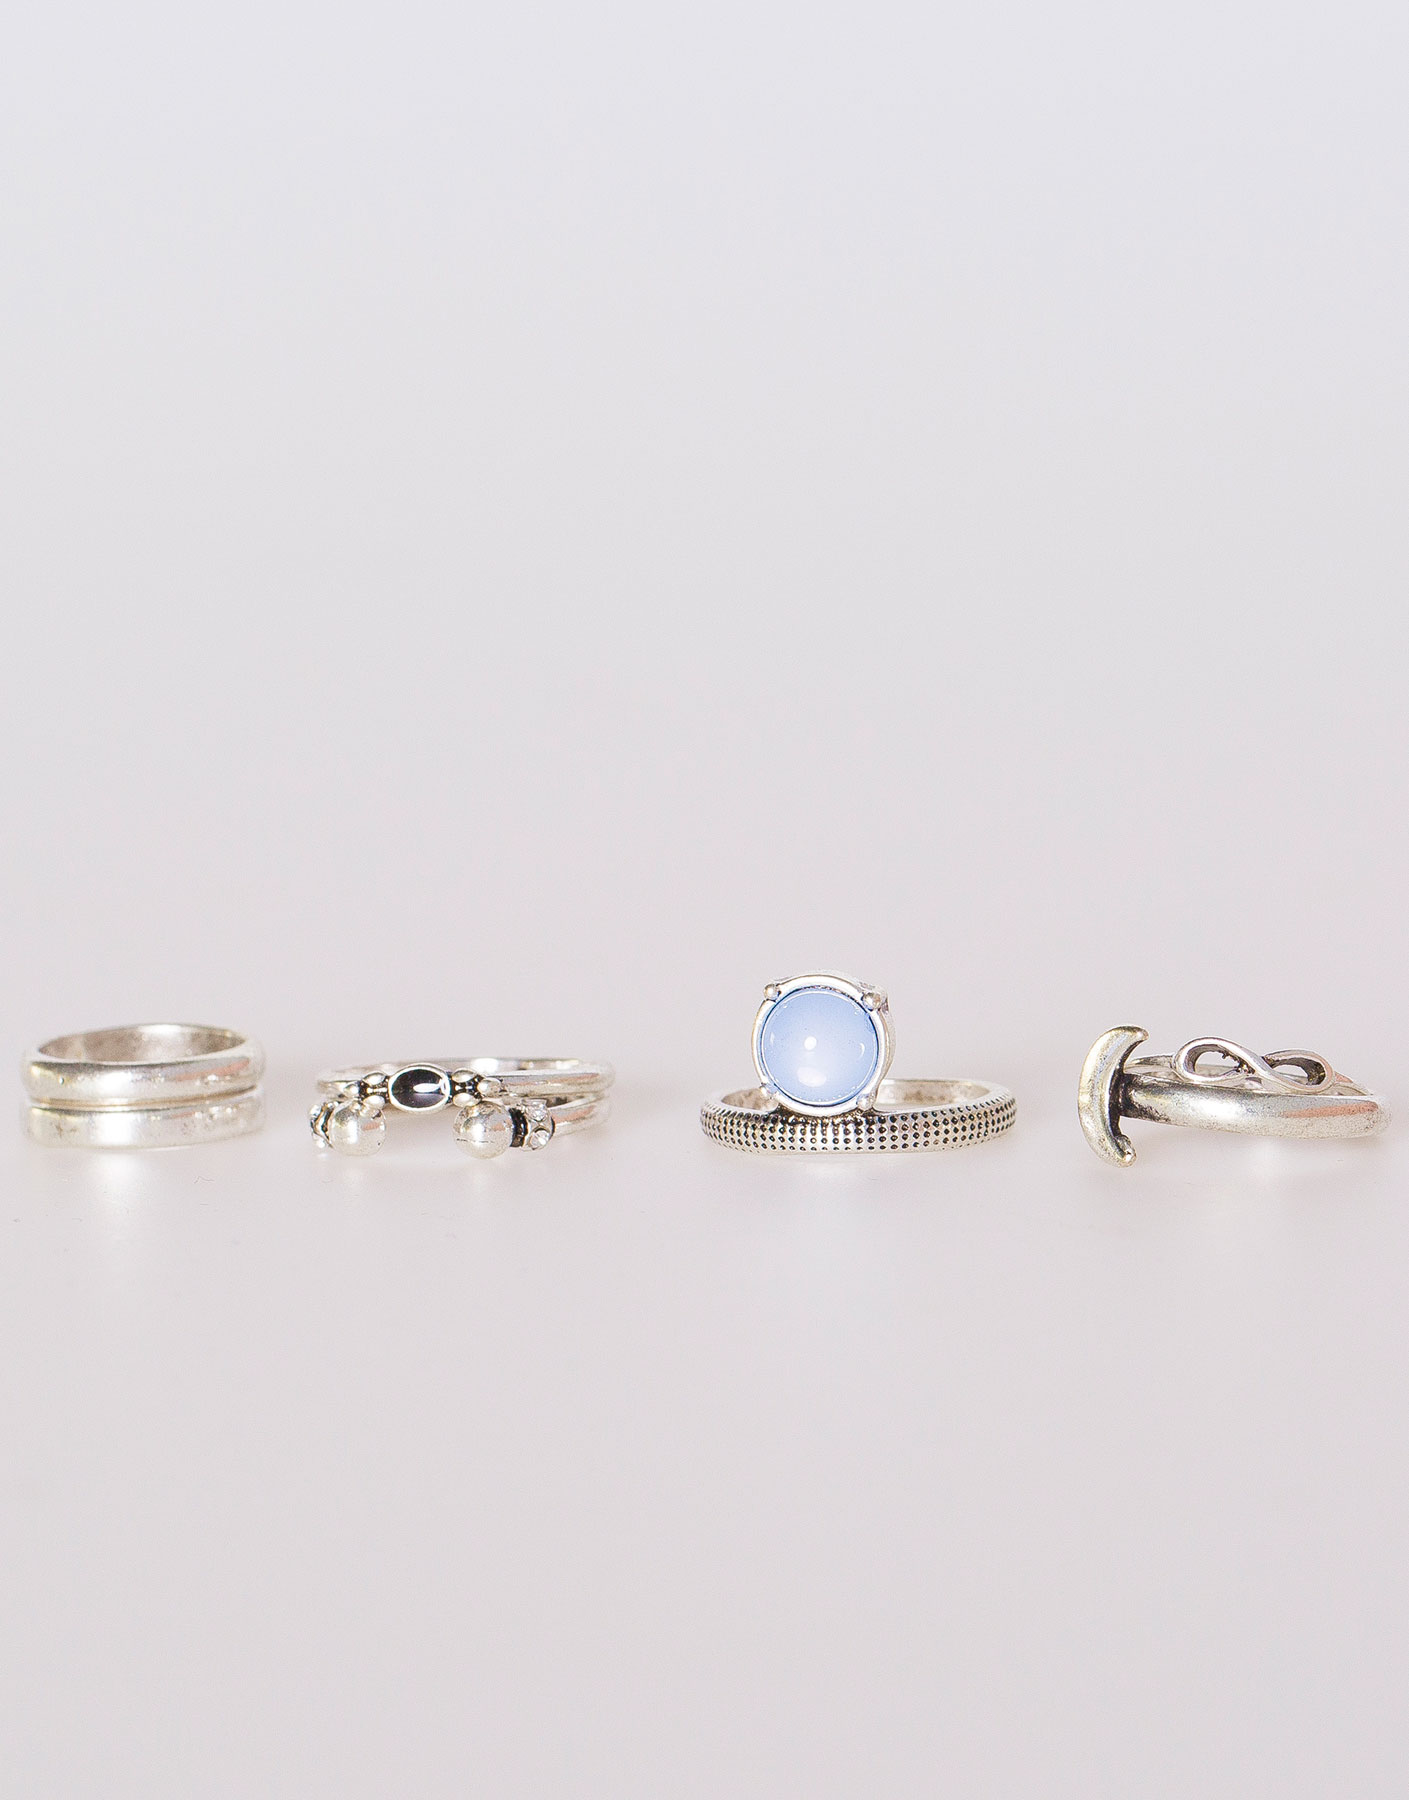 Pack of 7 assorted rings